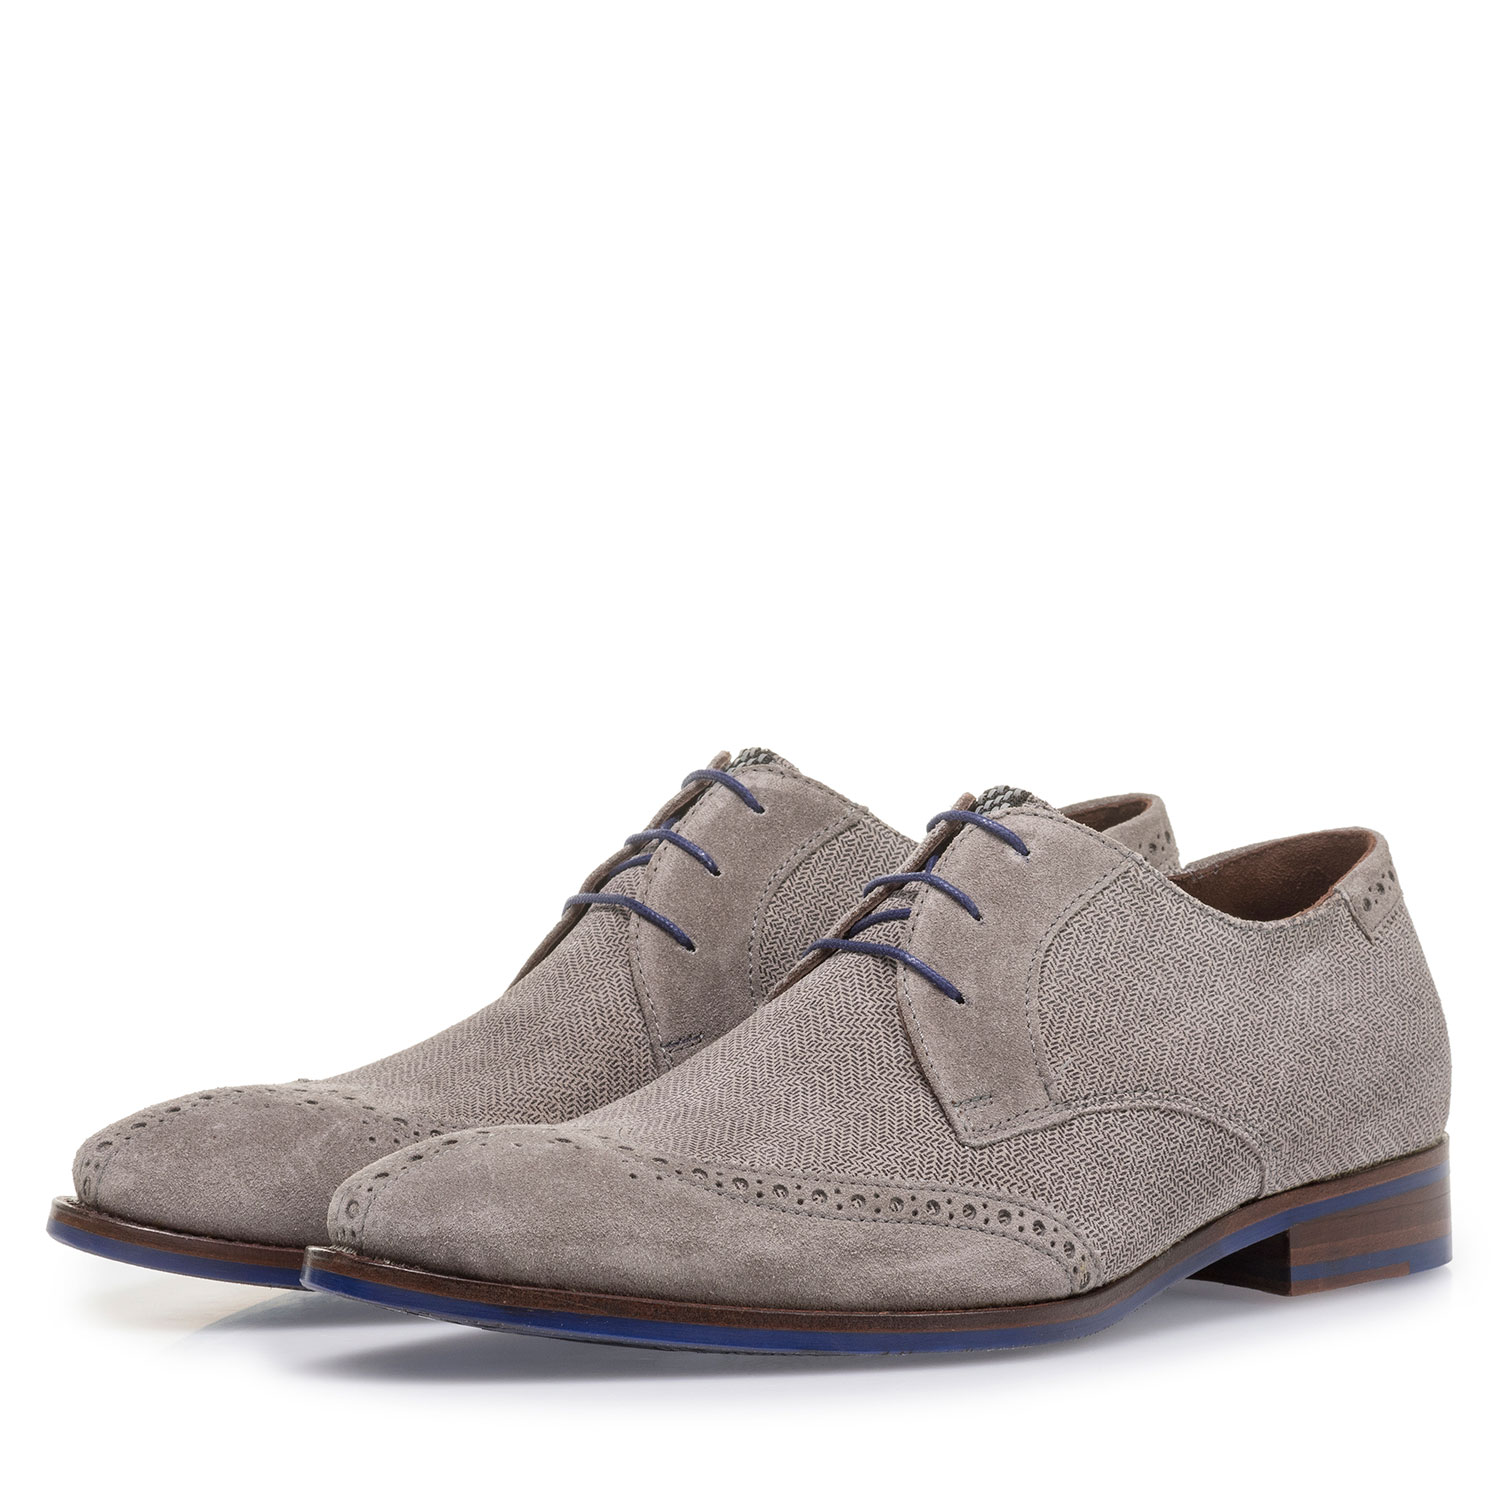 17122/02 - Light grey suede leather lace shoe with print